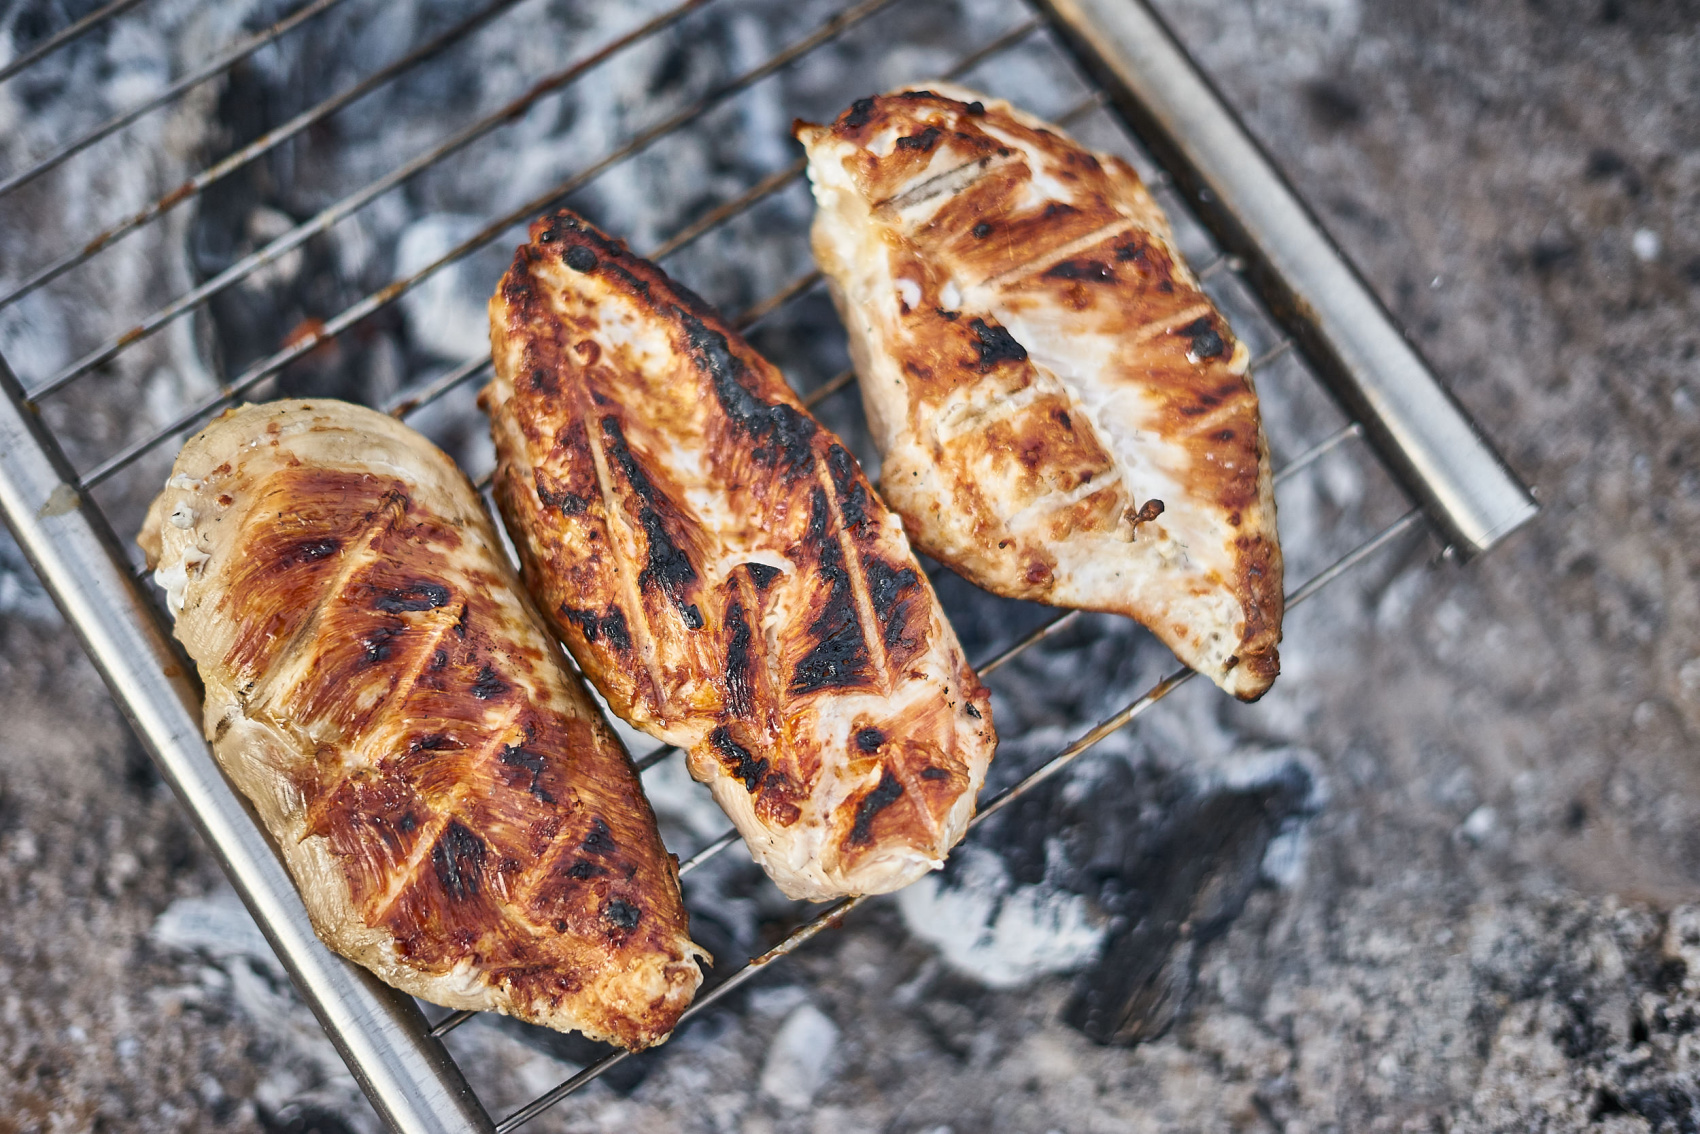 The best grilled chicken when camping! Check out this great healthy car camping dinner idea - chicken fajitas.